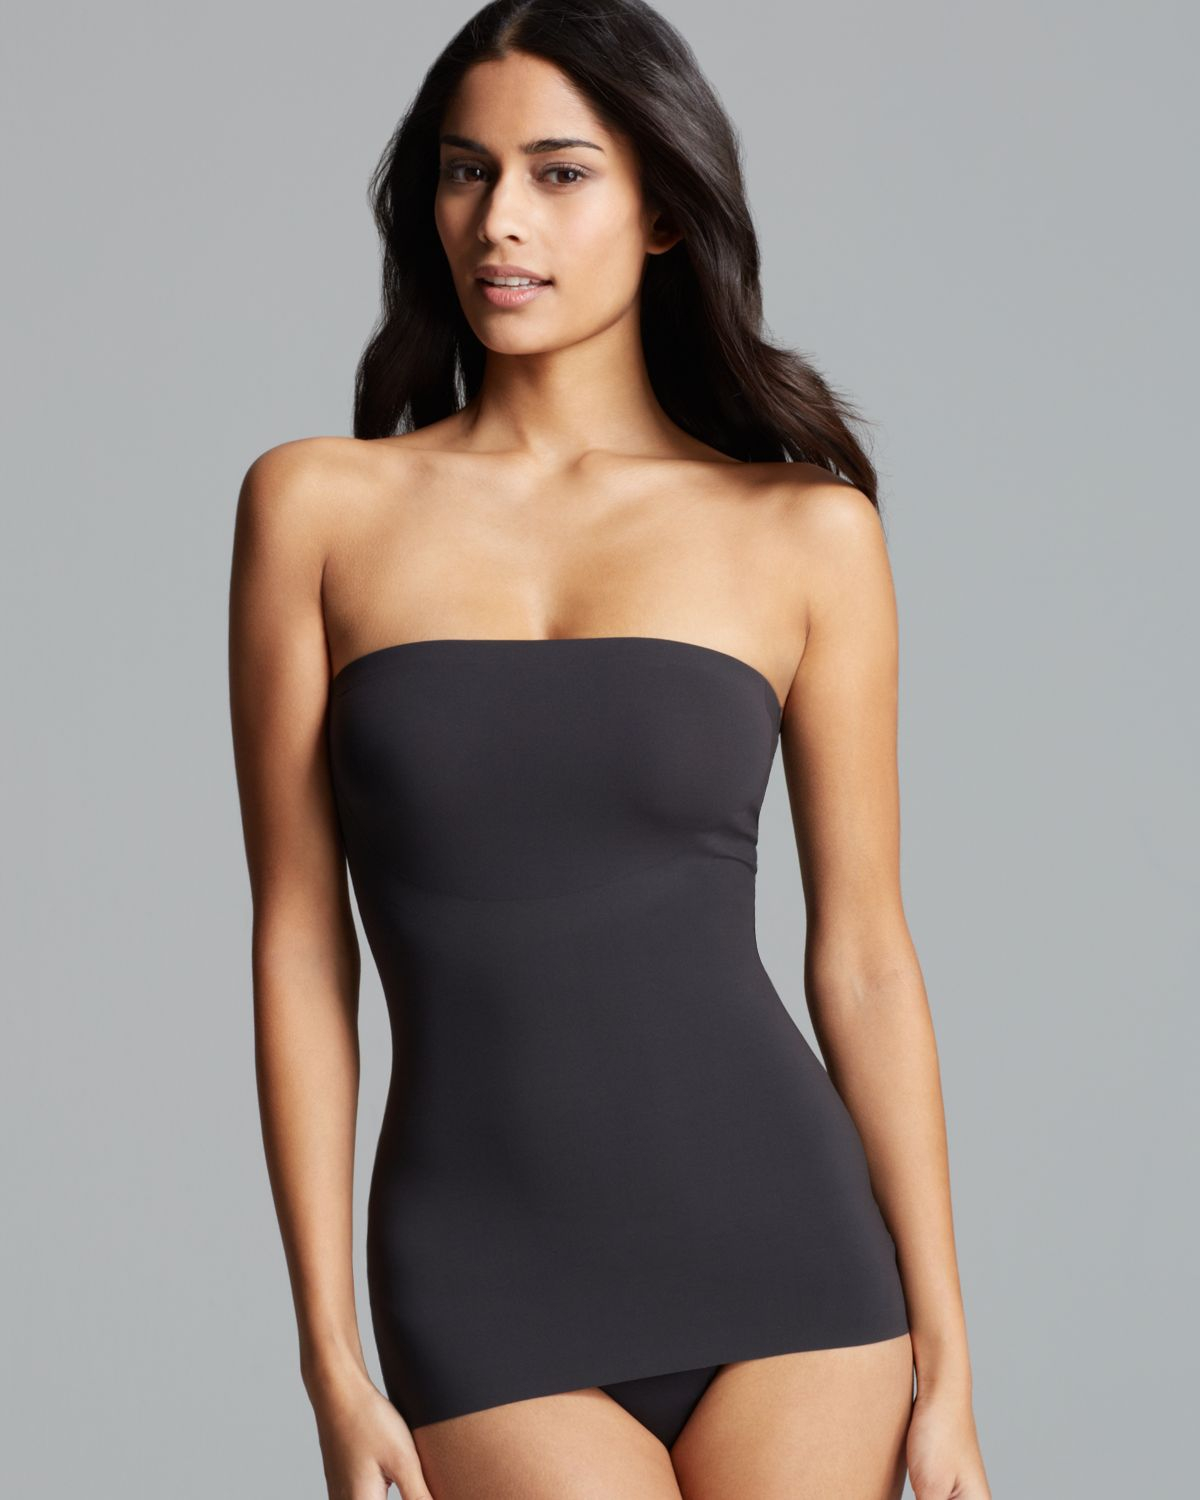 031a9385d8d5a Lyst - Spanx Trust Your Thinstincts Strapless Camisole in Black